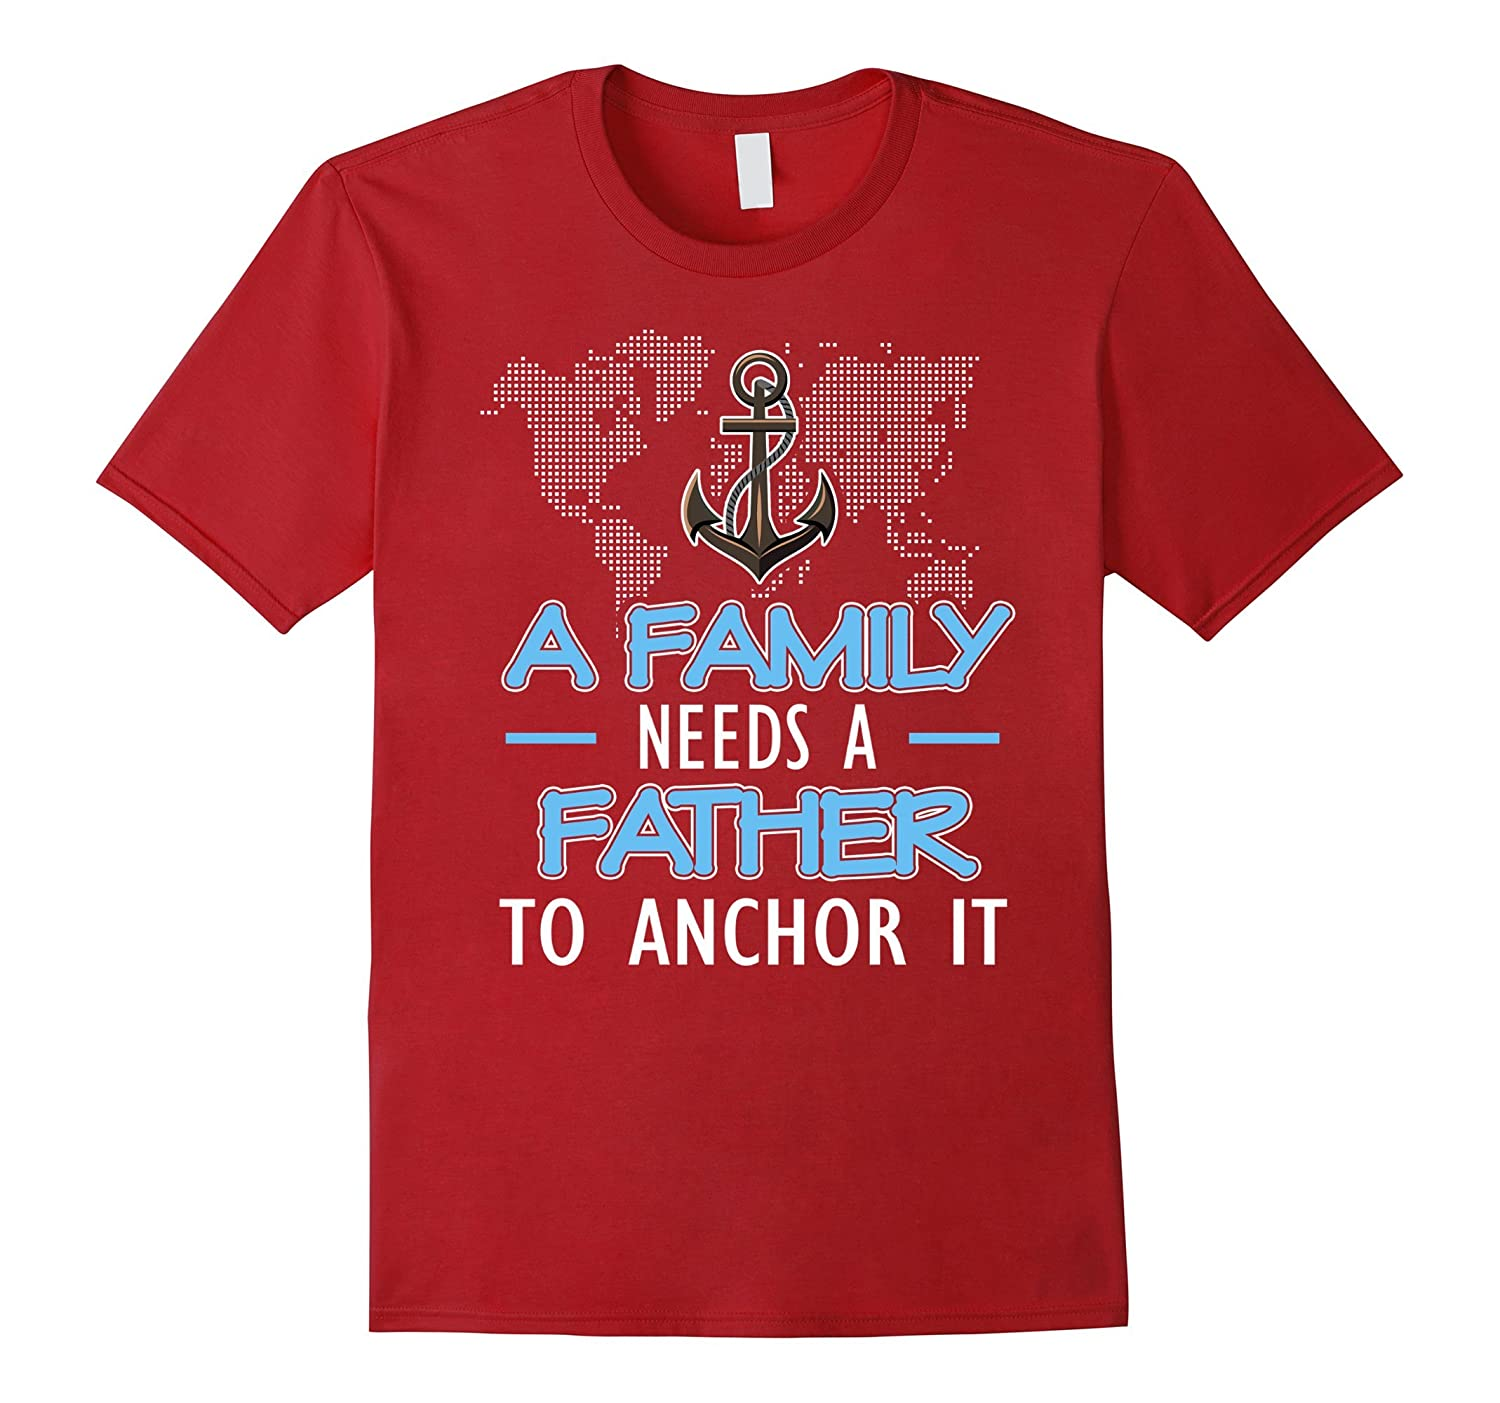 A family needs a father to anchor it Tees for Dad-TH